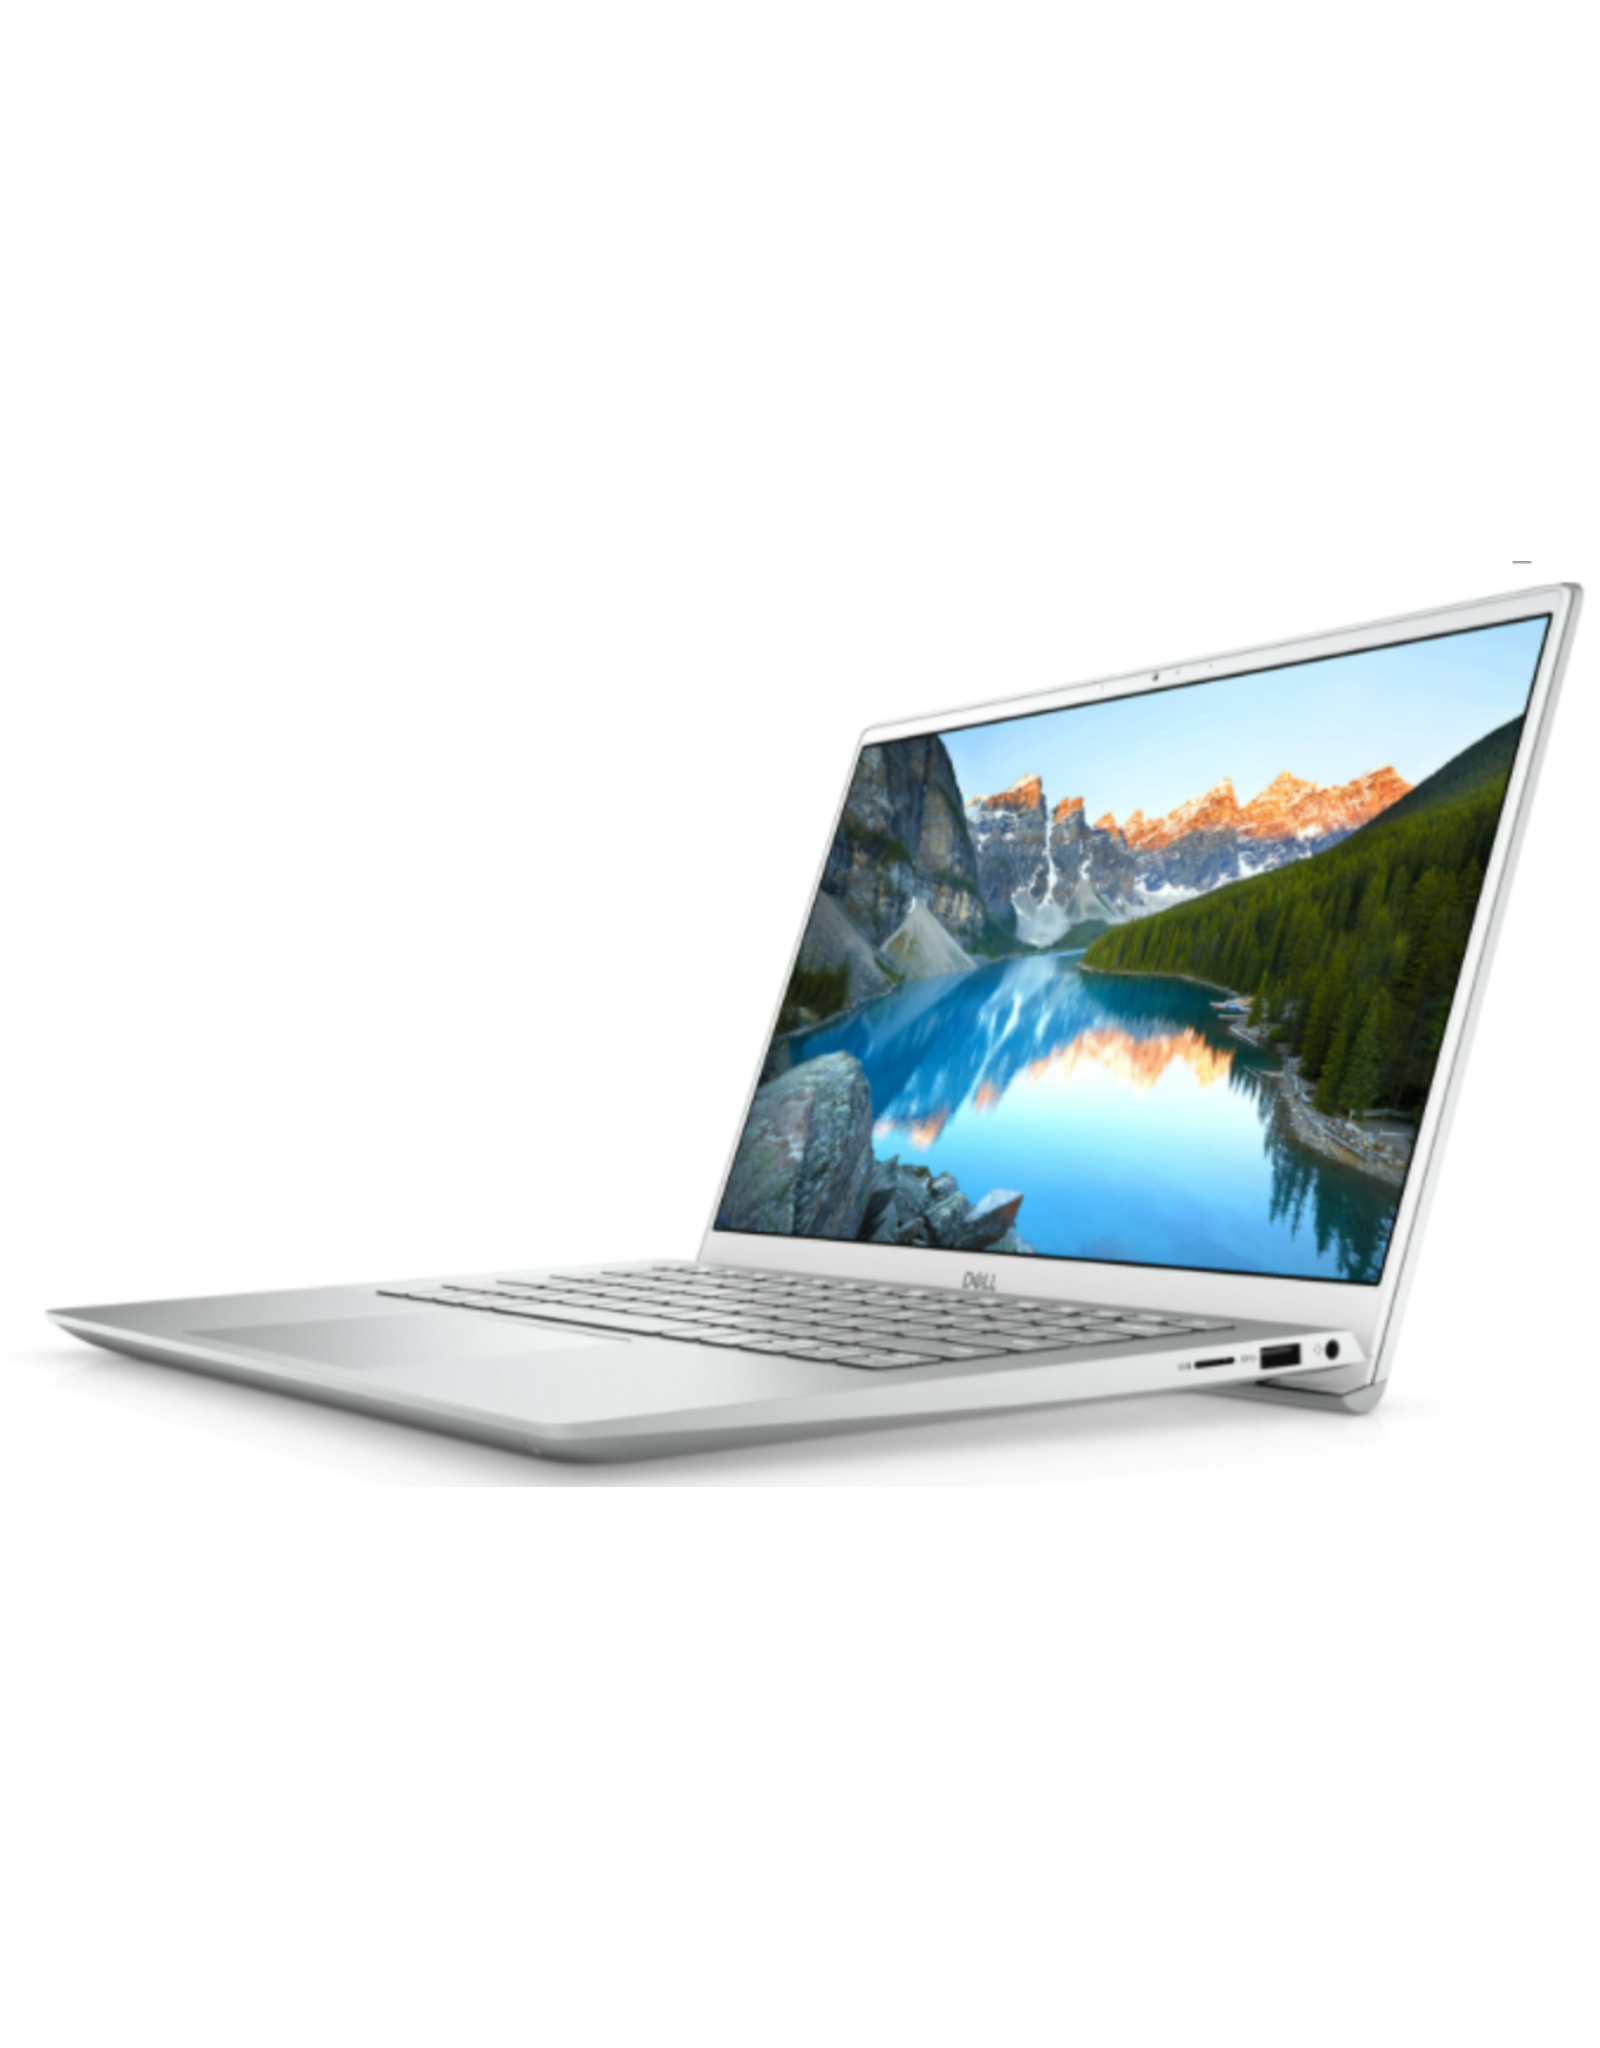 "DELL DELL INSPIRON 14 (5402): 14"" (1920x1080) ANIT-GLARE LED NON-TOUCH NARROW BORDER DISPLAY, 11TH-GEN INTEL COR i7-1165G7, 12GB DDR4, 512GB SSD, WINDOWS 10 HOME, INTEL IRIS Xe GRAPHICS w/ SHARED MEMORY, BACKLIT SILVER KEYBOARD w FINGERPRINT READER, 1 YR"